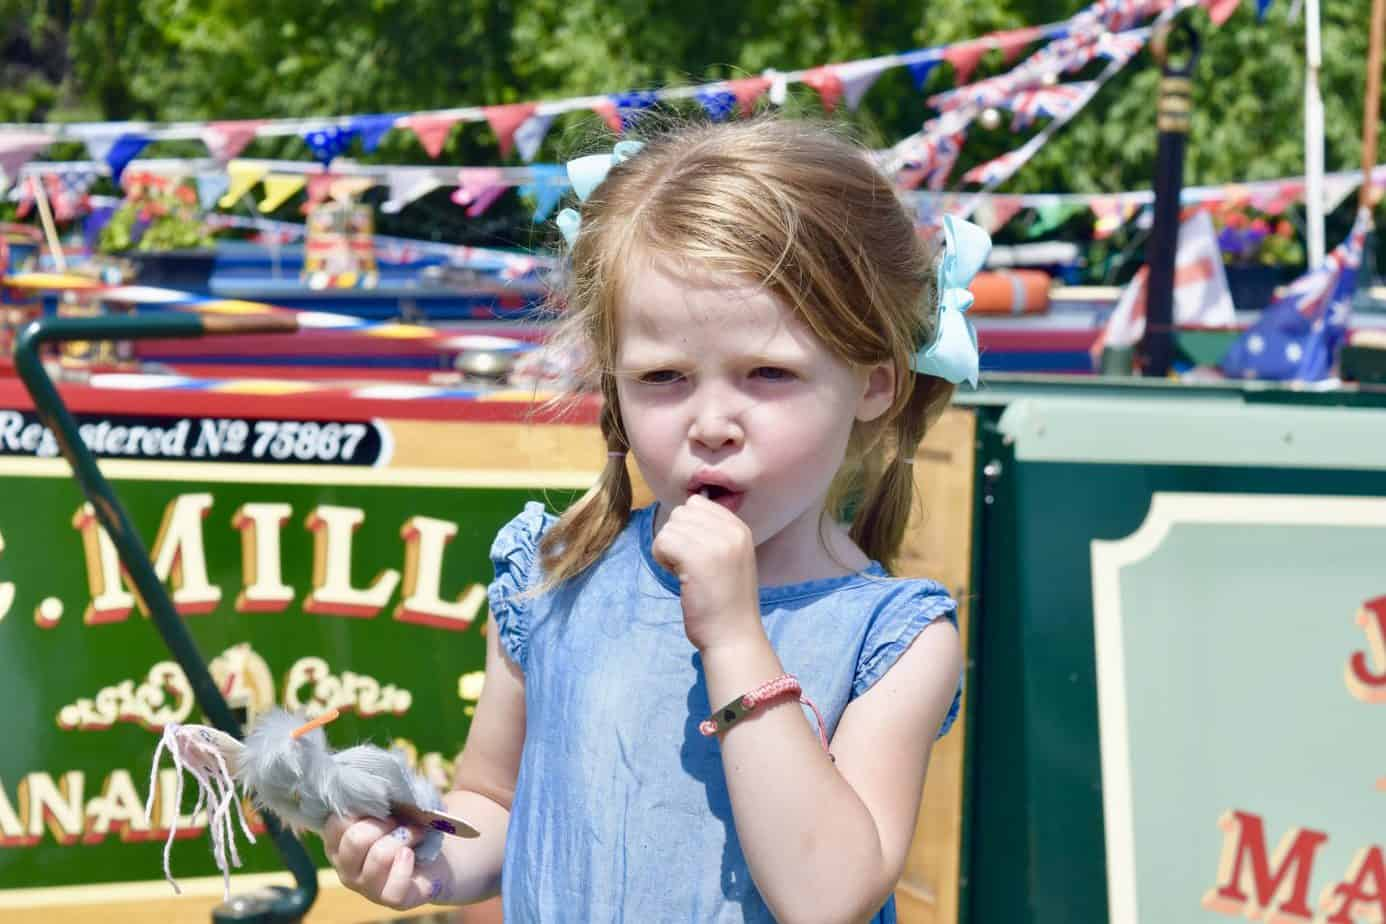 W having a lolly with her ID bracelet on her wrist whilst at a festival